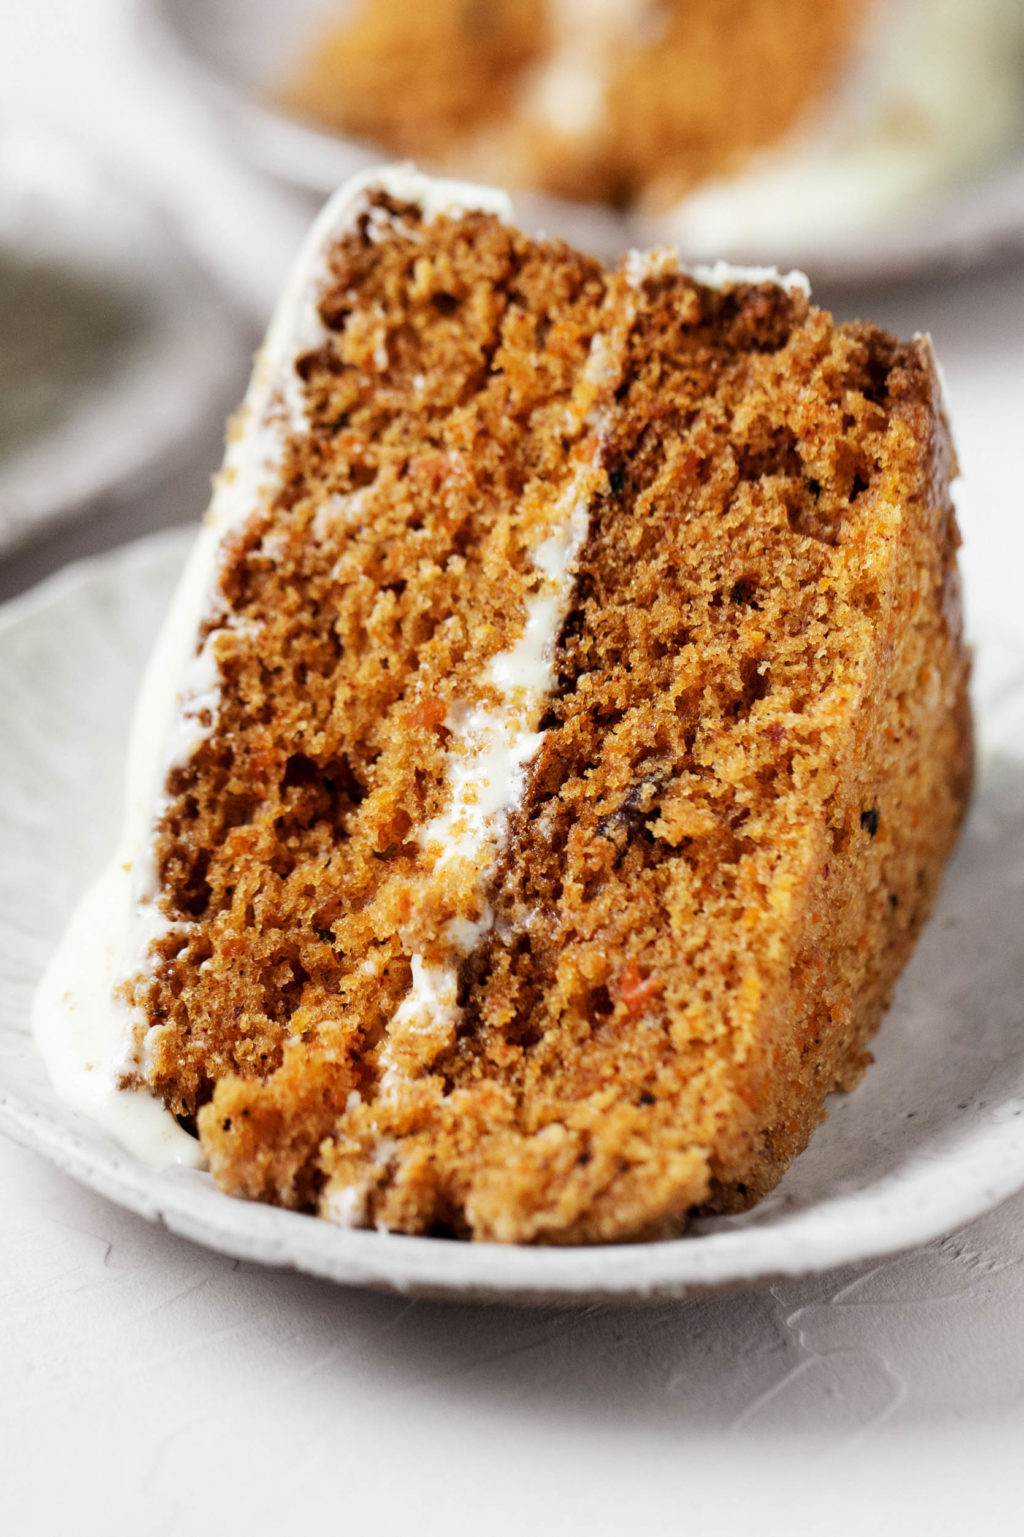 A big slice of carrot pumpkin cake, studded with raisins and walnuts.